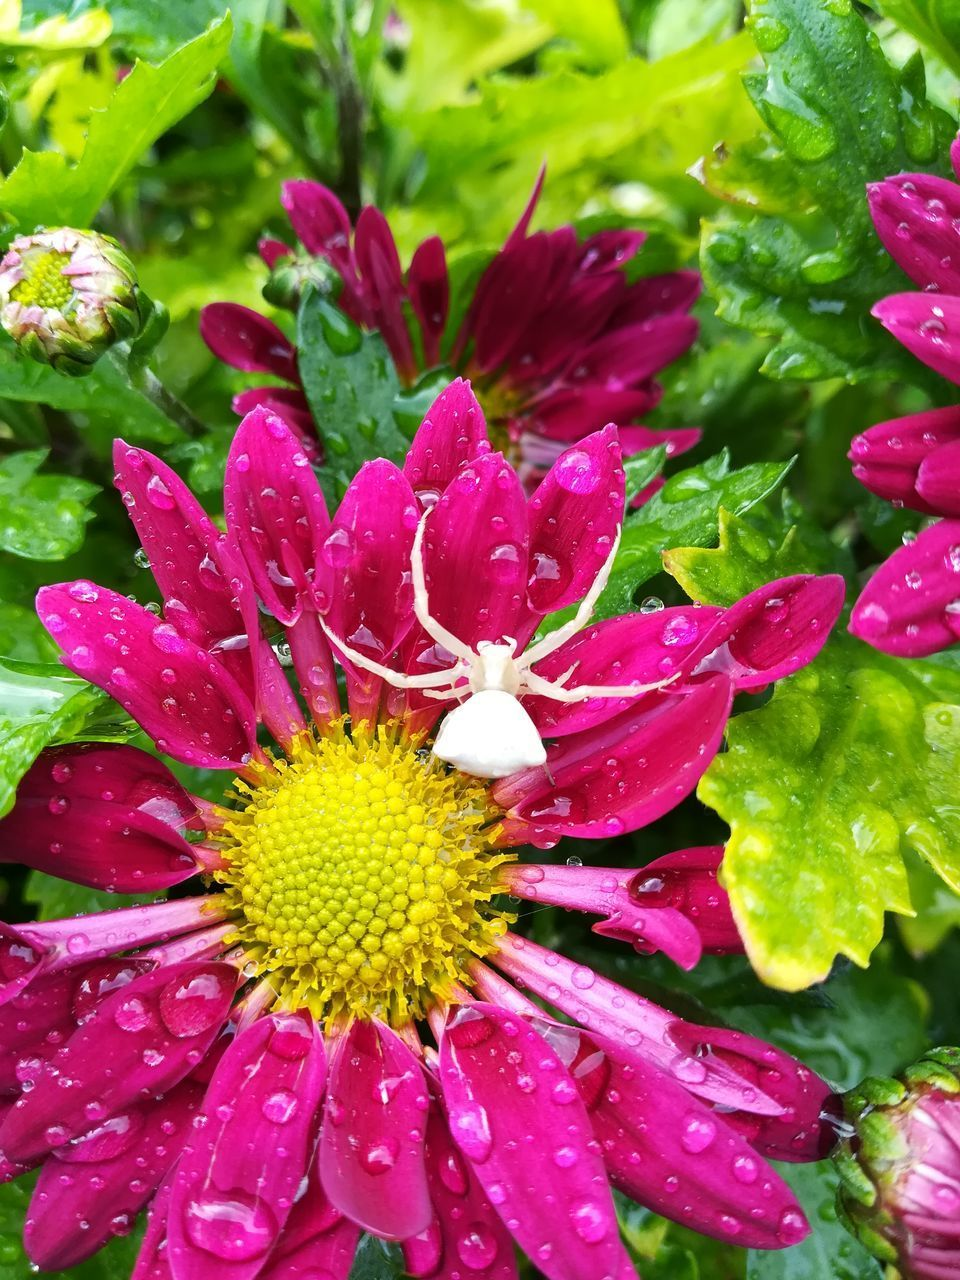 flowering plant, flower, plant, beauty in nature, vulnerability, fragility, freshness, growth, petal, flower head, inflorescence, close-up, water, drop, wet, nature, pink color, no people, pollen, outdoors, raindrop, dew, purple, purity